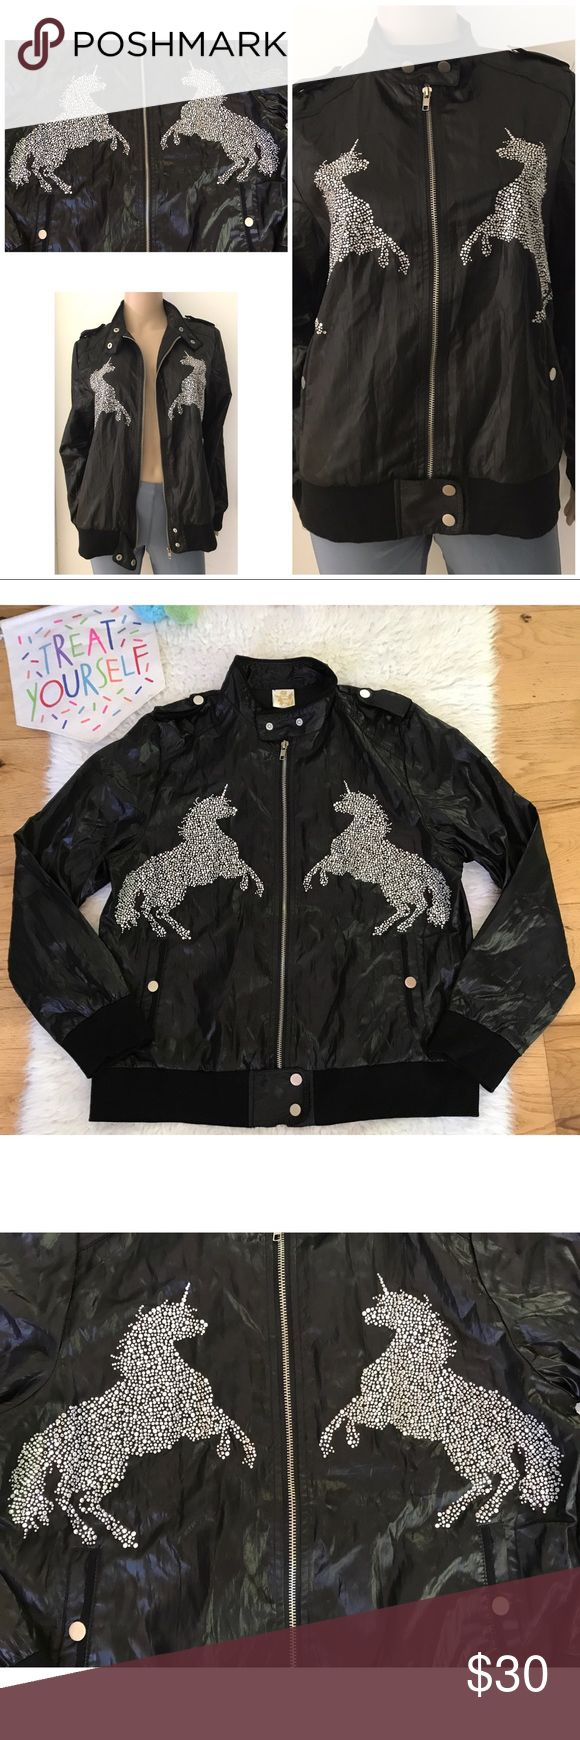 """EUC Rhinestones Unicorn Windbreaker Moto Jacket Super amazing and fun Embellished crystal unicorn Moto style nylon like jacket. Materials and size tag is not there, but Fits like a small to maybe medium. Remind me of 90s style Windbreaker jacket. No major flaws. Measure about 24"""" length, 20"""" pit to pit, 23.5"""" sleeves, 15.5"""" shoulder to shoulder. Snap buttons an zipper closured. Pockets on the side. ❌No trades or modeling. Open to reasonable offers. Bundle more to save more. Thank you‼️…"""